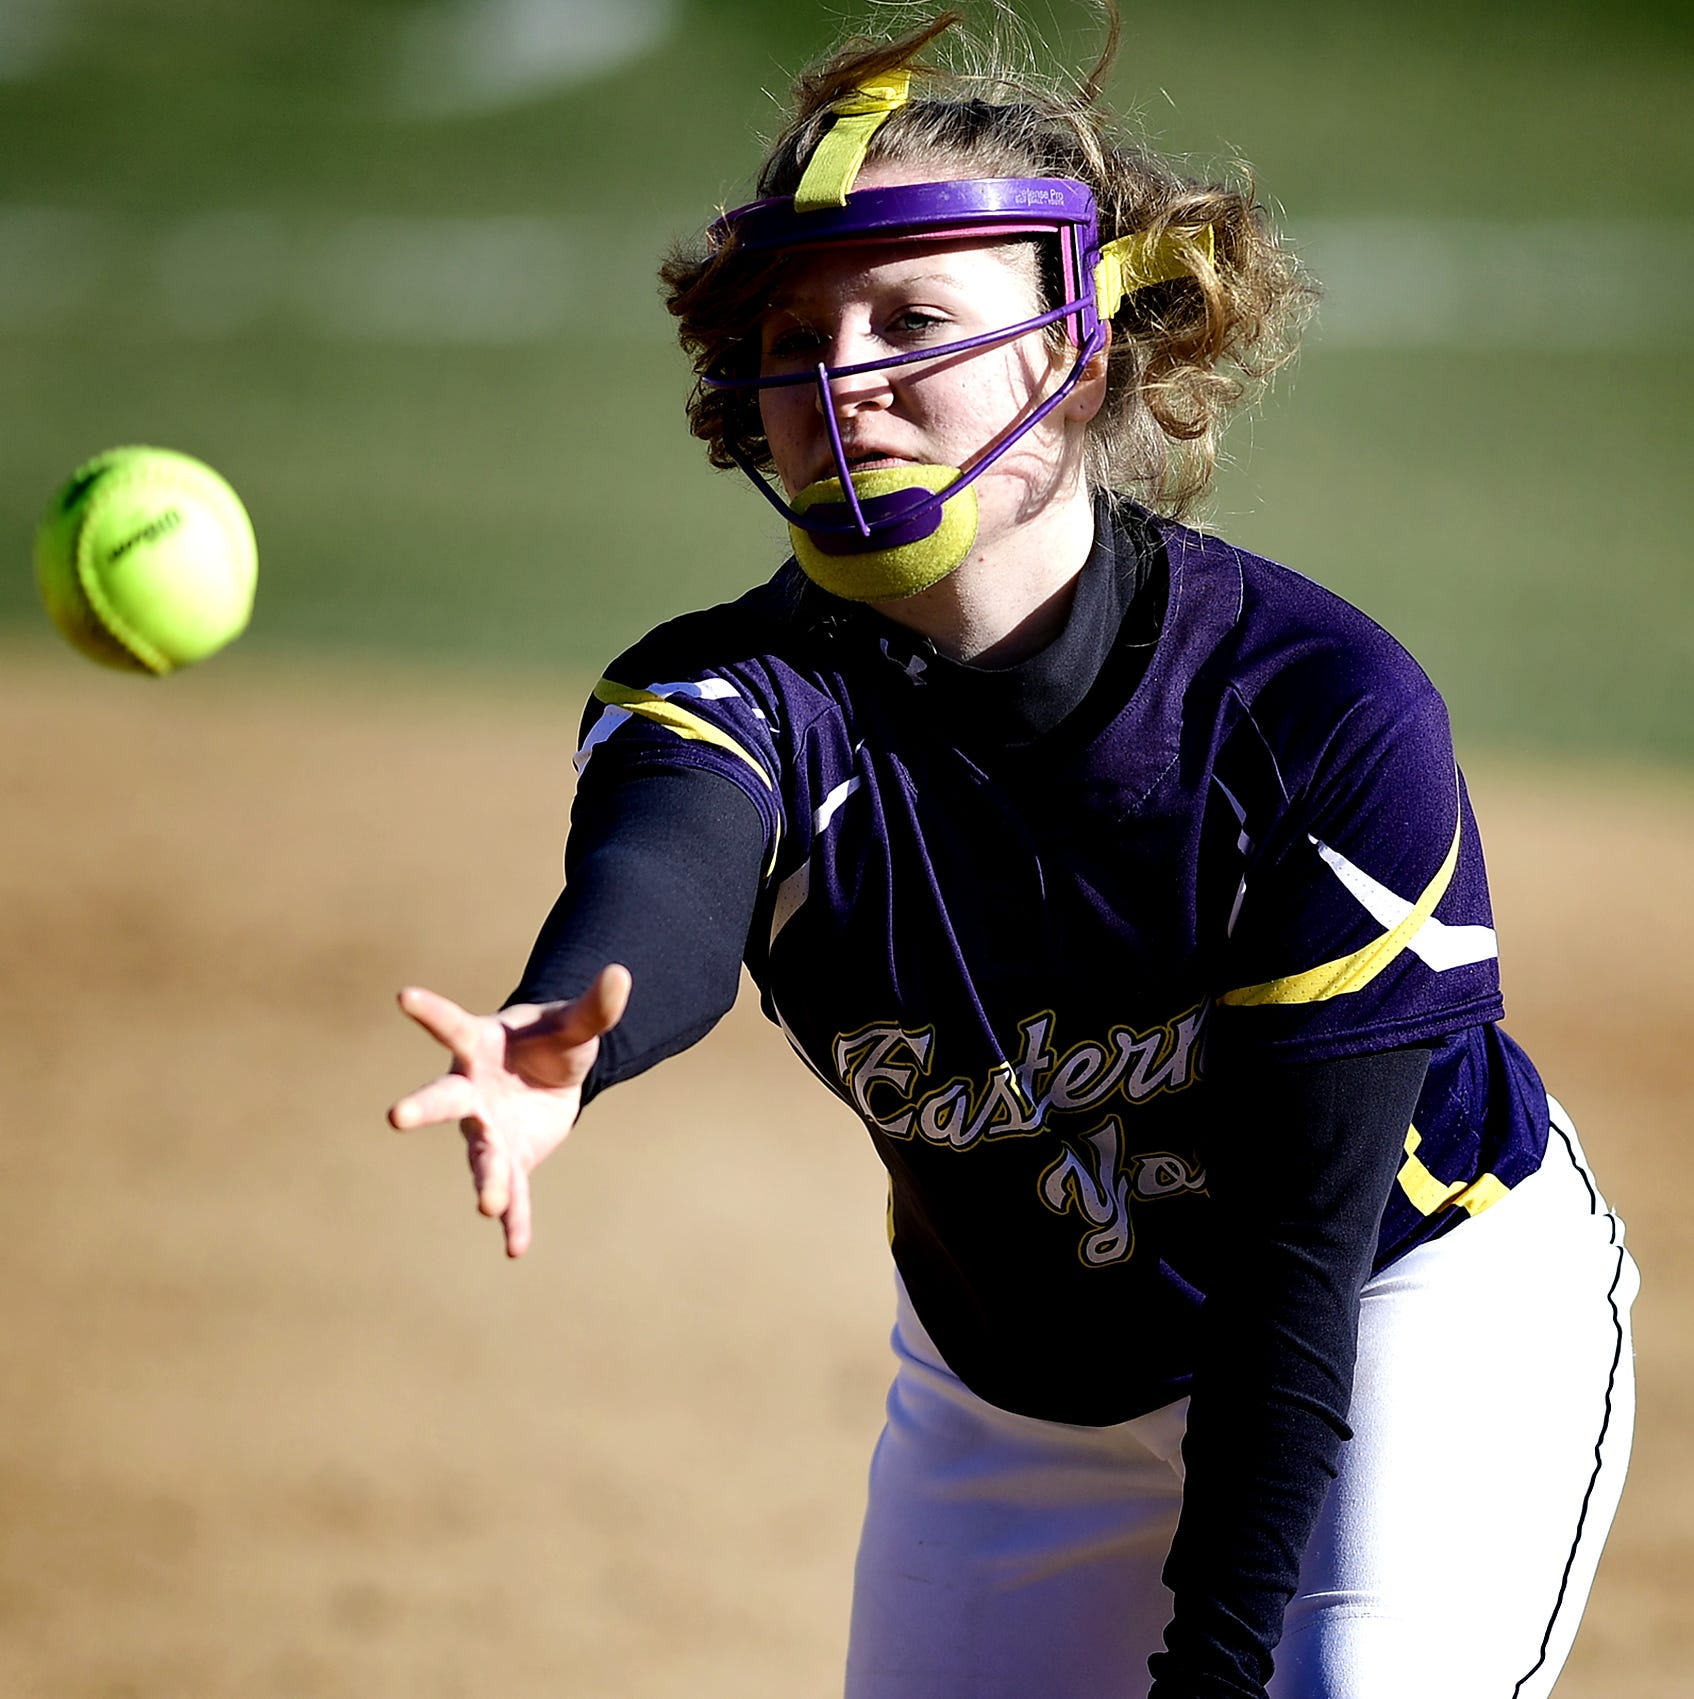 PREP ROUNDUP, WEDNESDAY, MARCH 27: Eastern York softball team aiming for return to states